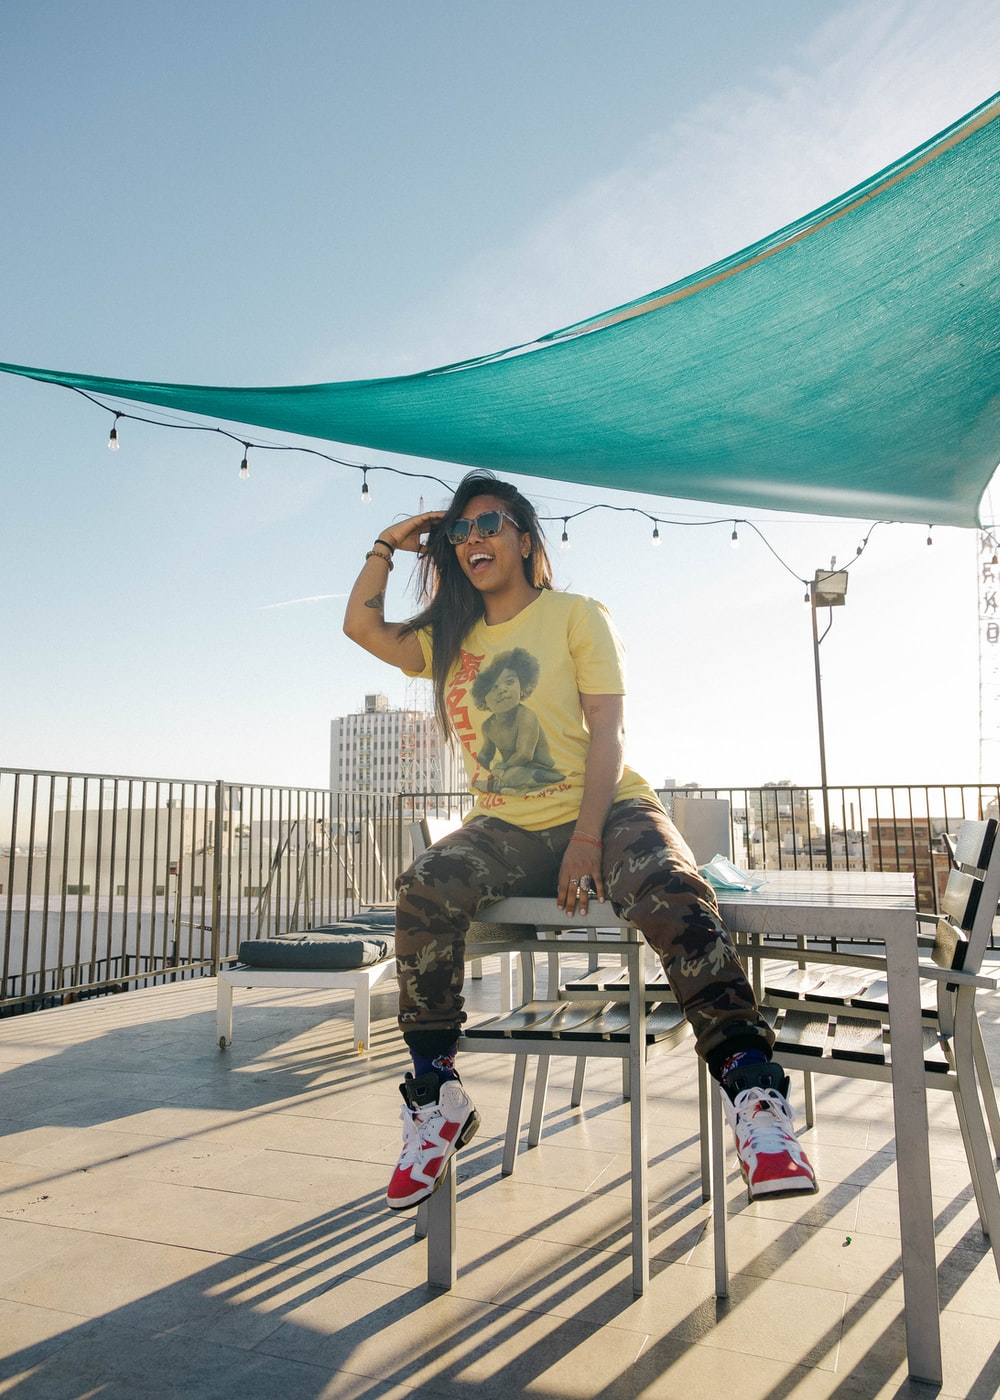 woman in yellow t-shirt and black pants sitting on white wooden bench during daytime